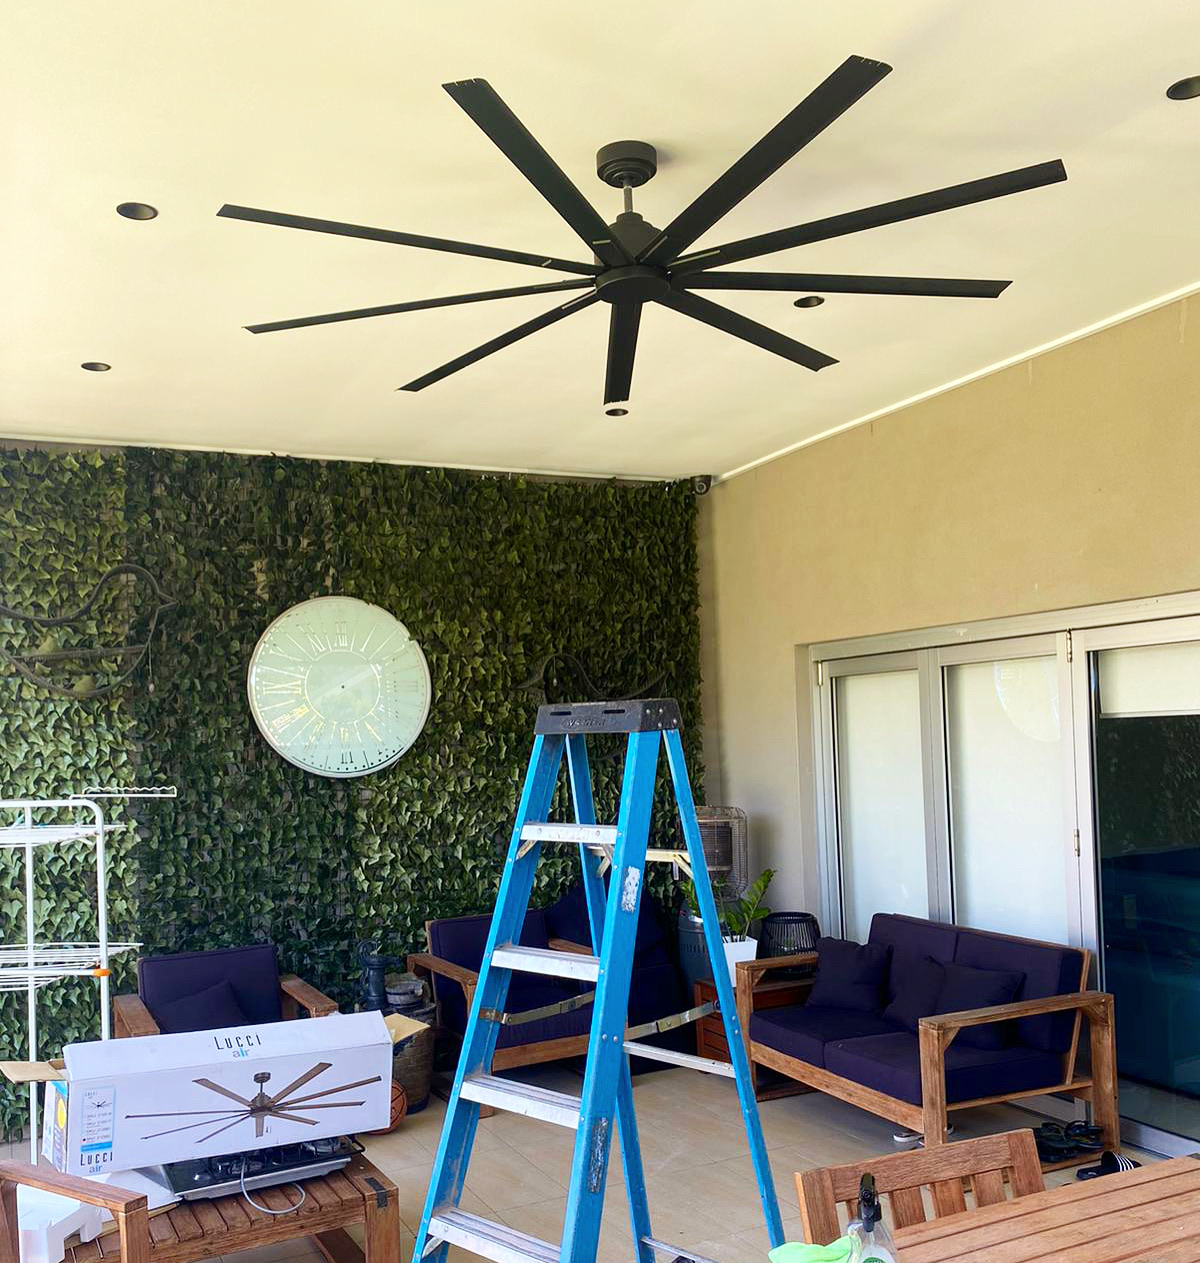 Ceiling fan installation by Justflow Electrical Services